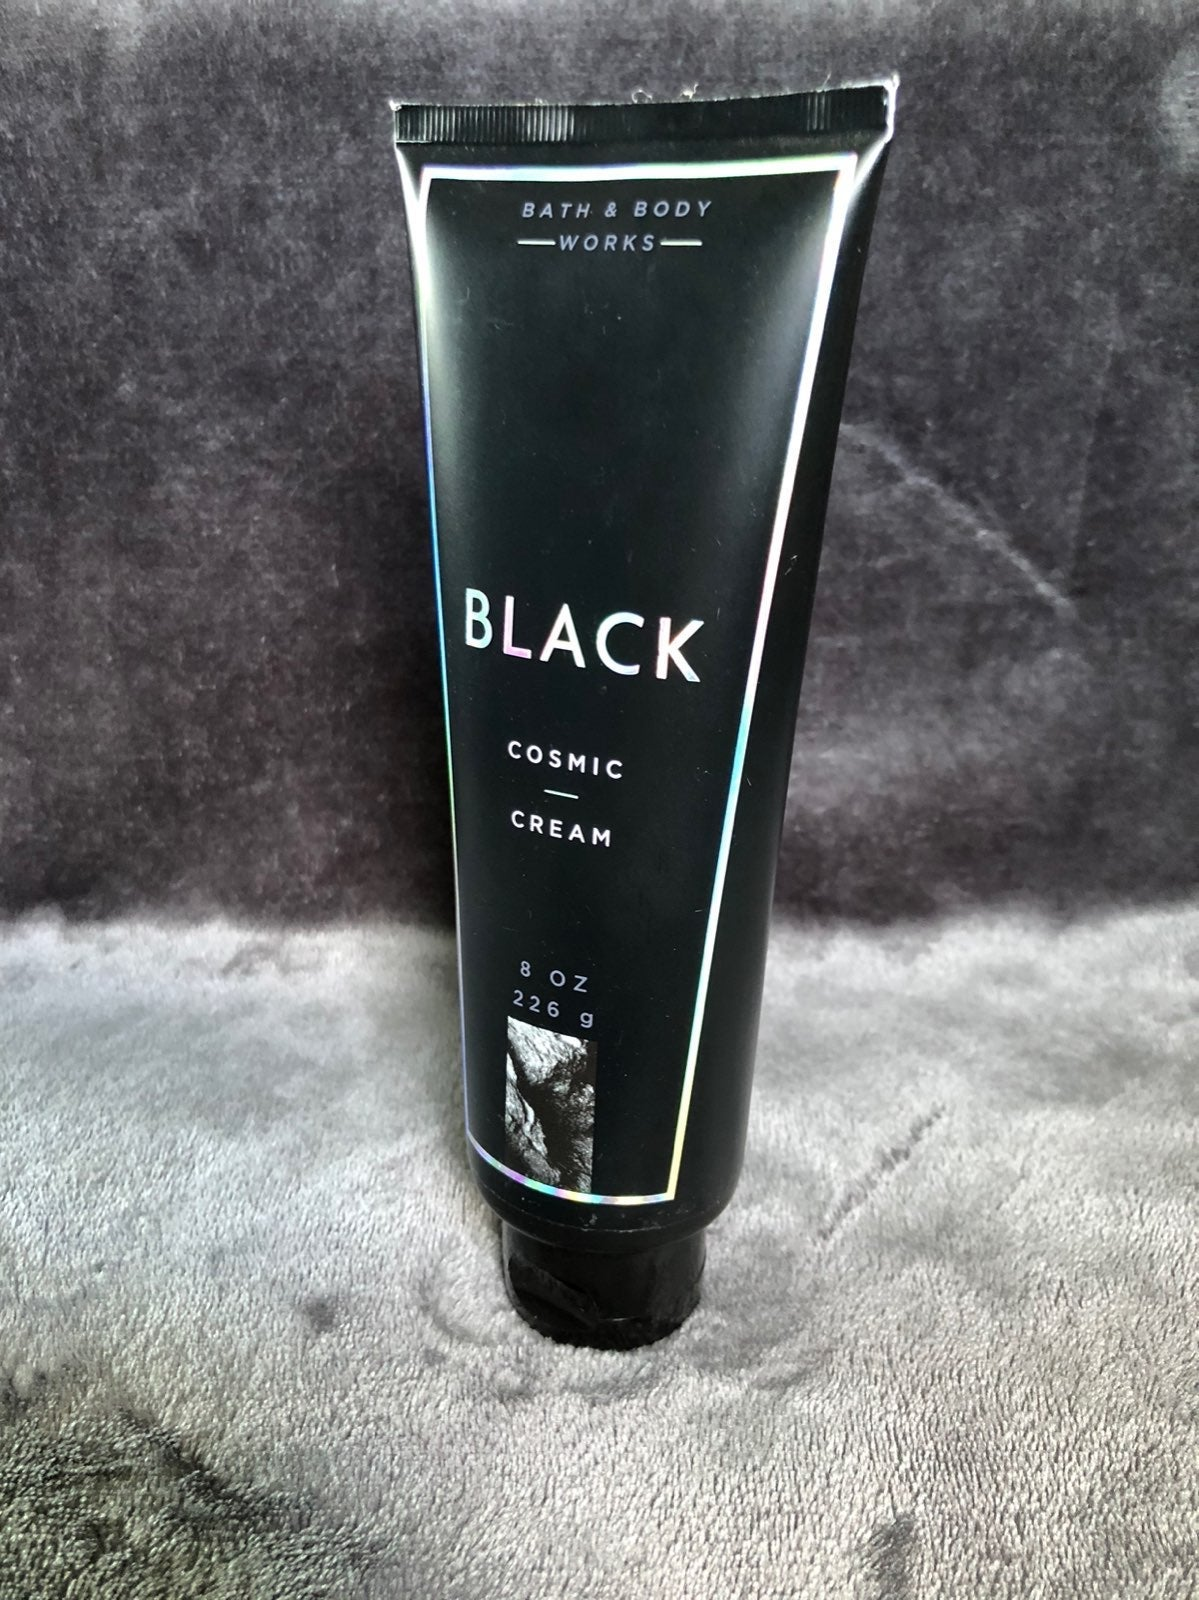 B&BW Black Cosmic Cream